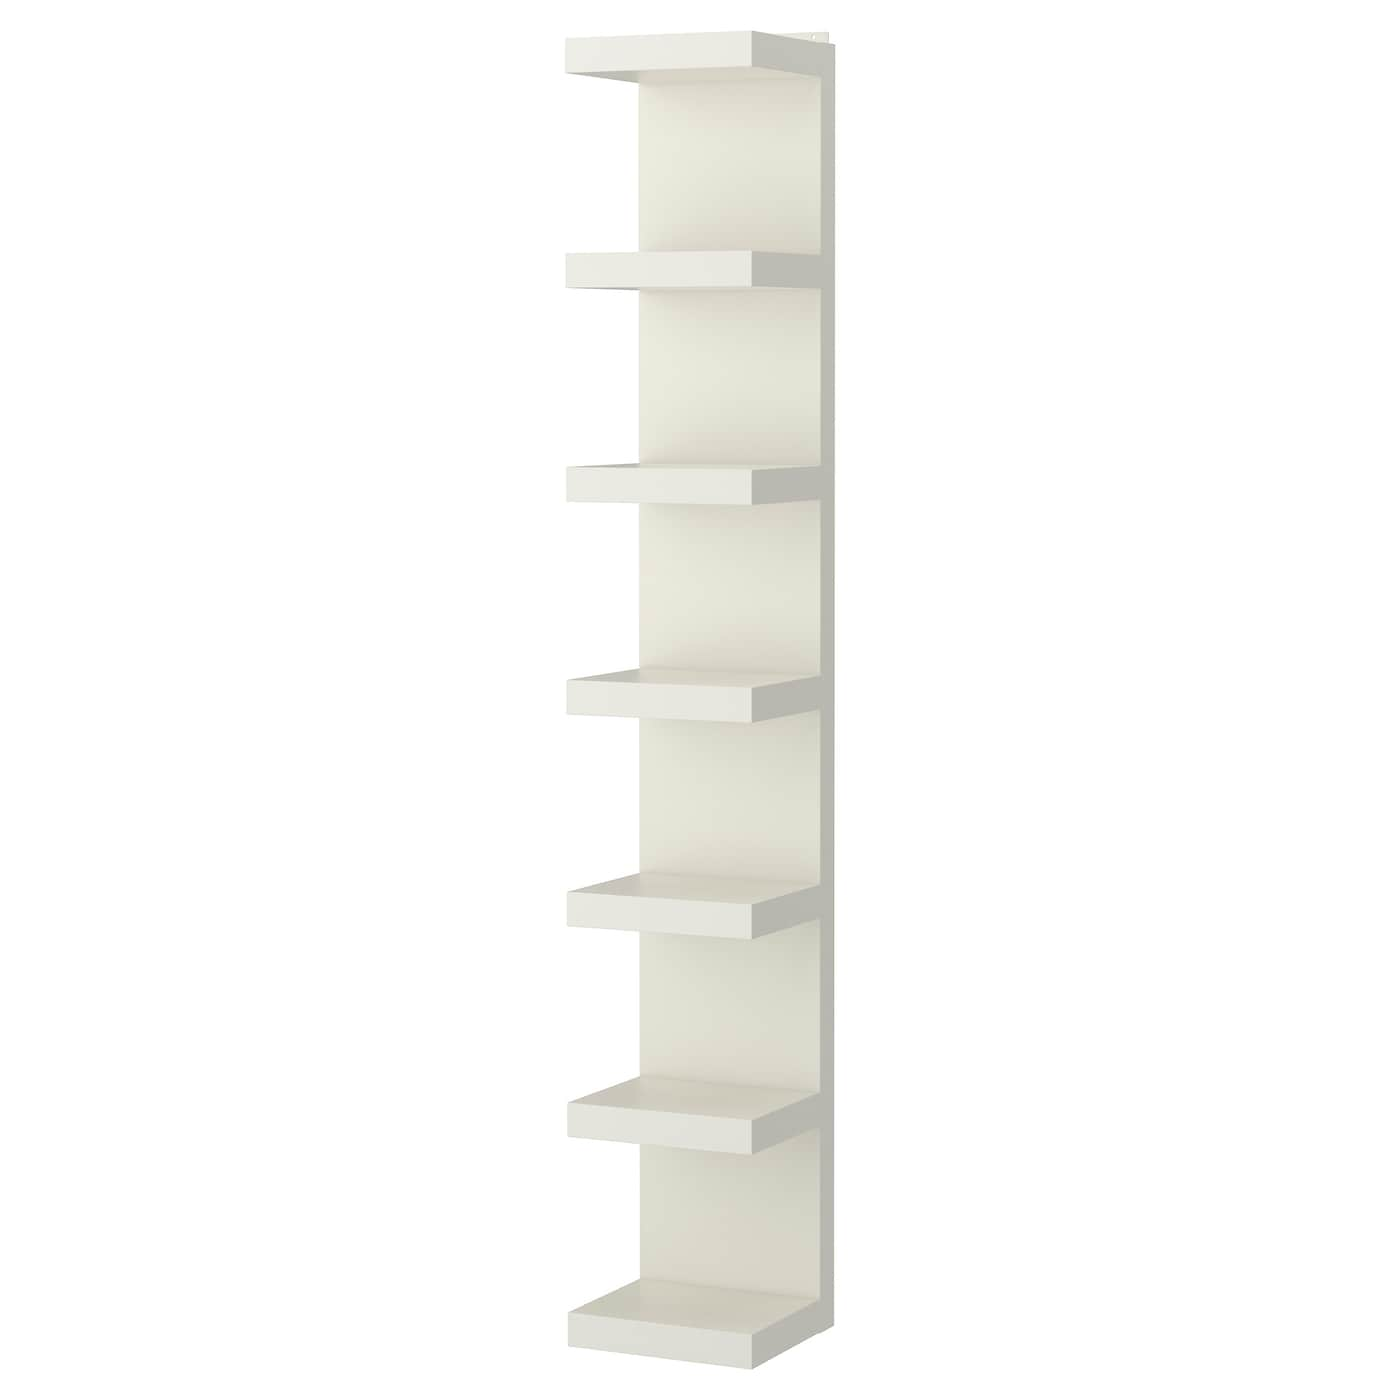 Lack Wall Shelf Unit White Ikea Switzerland